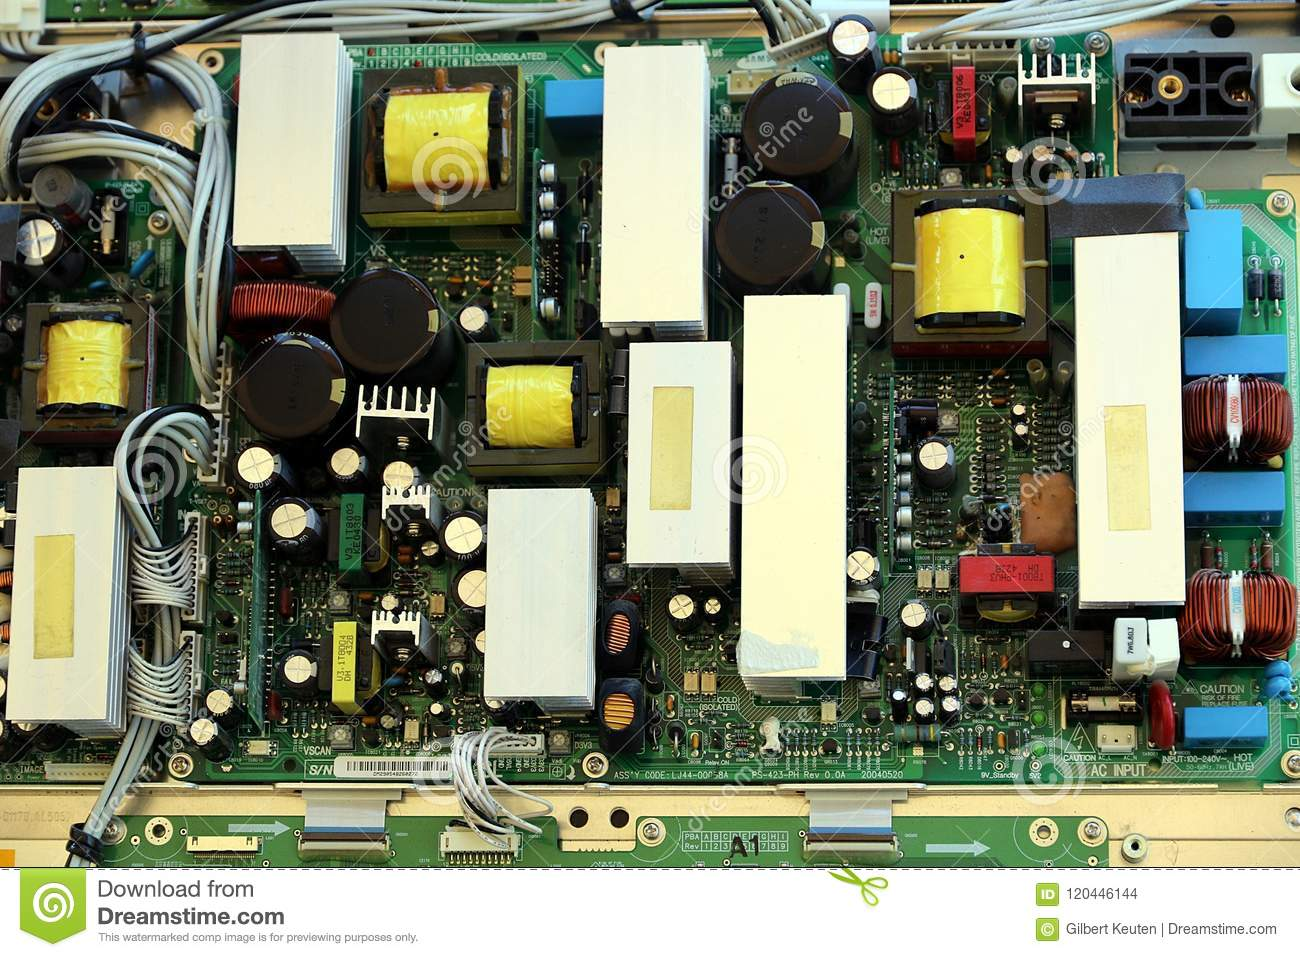 Pc Board With Electronic Parts Stock Photo Image Of Printed Circuit Components Inside A Computer From The Plasma Color Tv